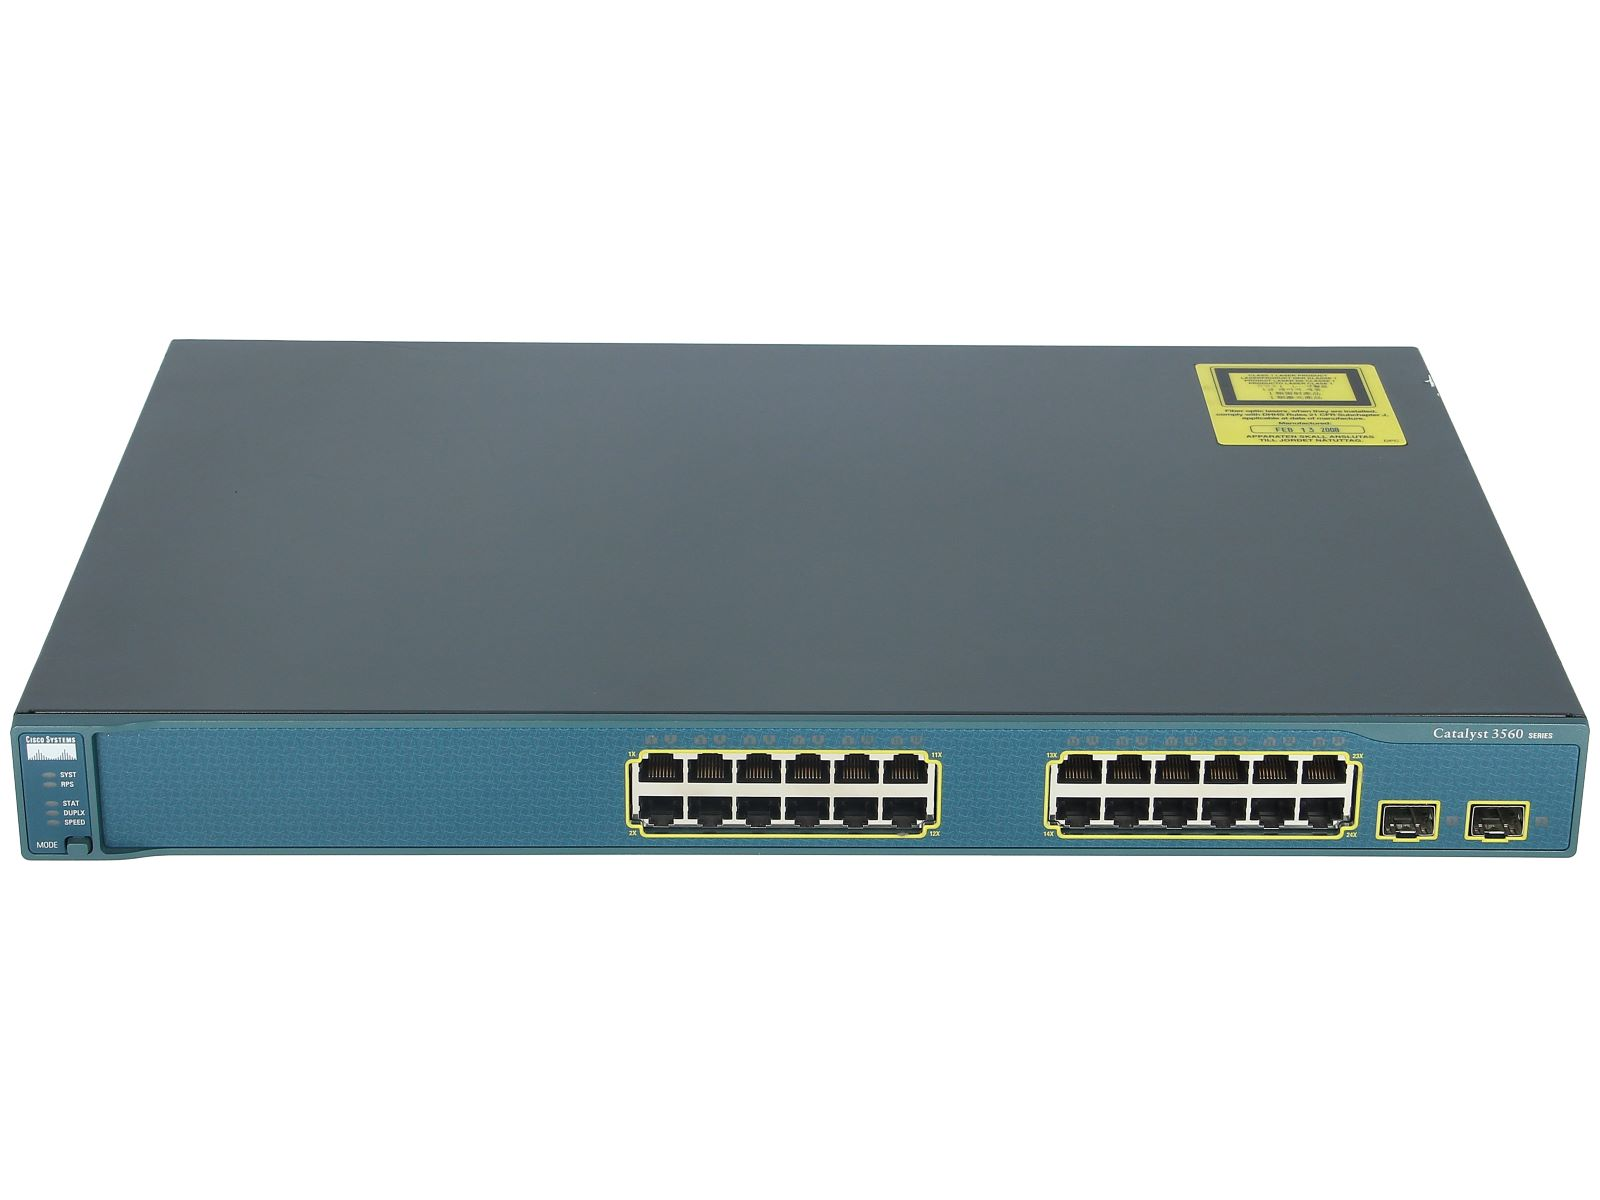 CISCO CATALYST 3560 WS-C3560-24PS-S Managed Fast Ethernet